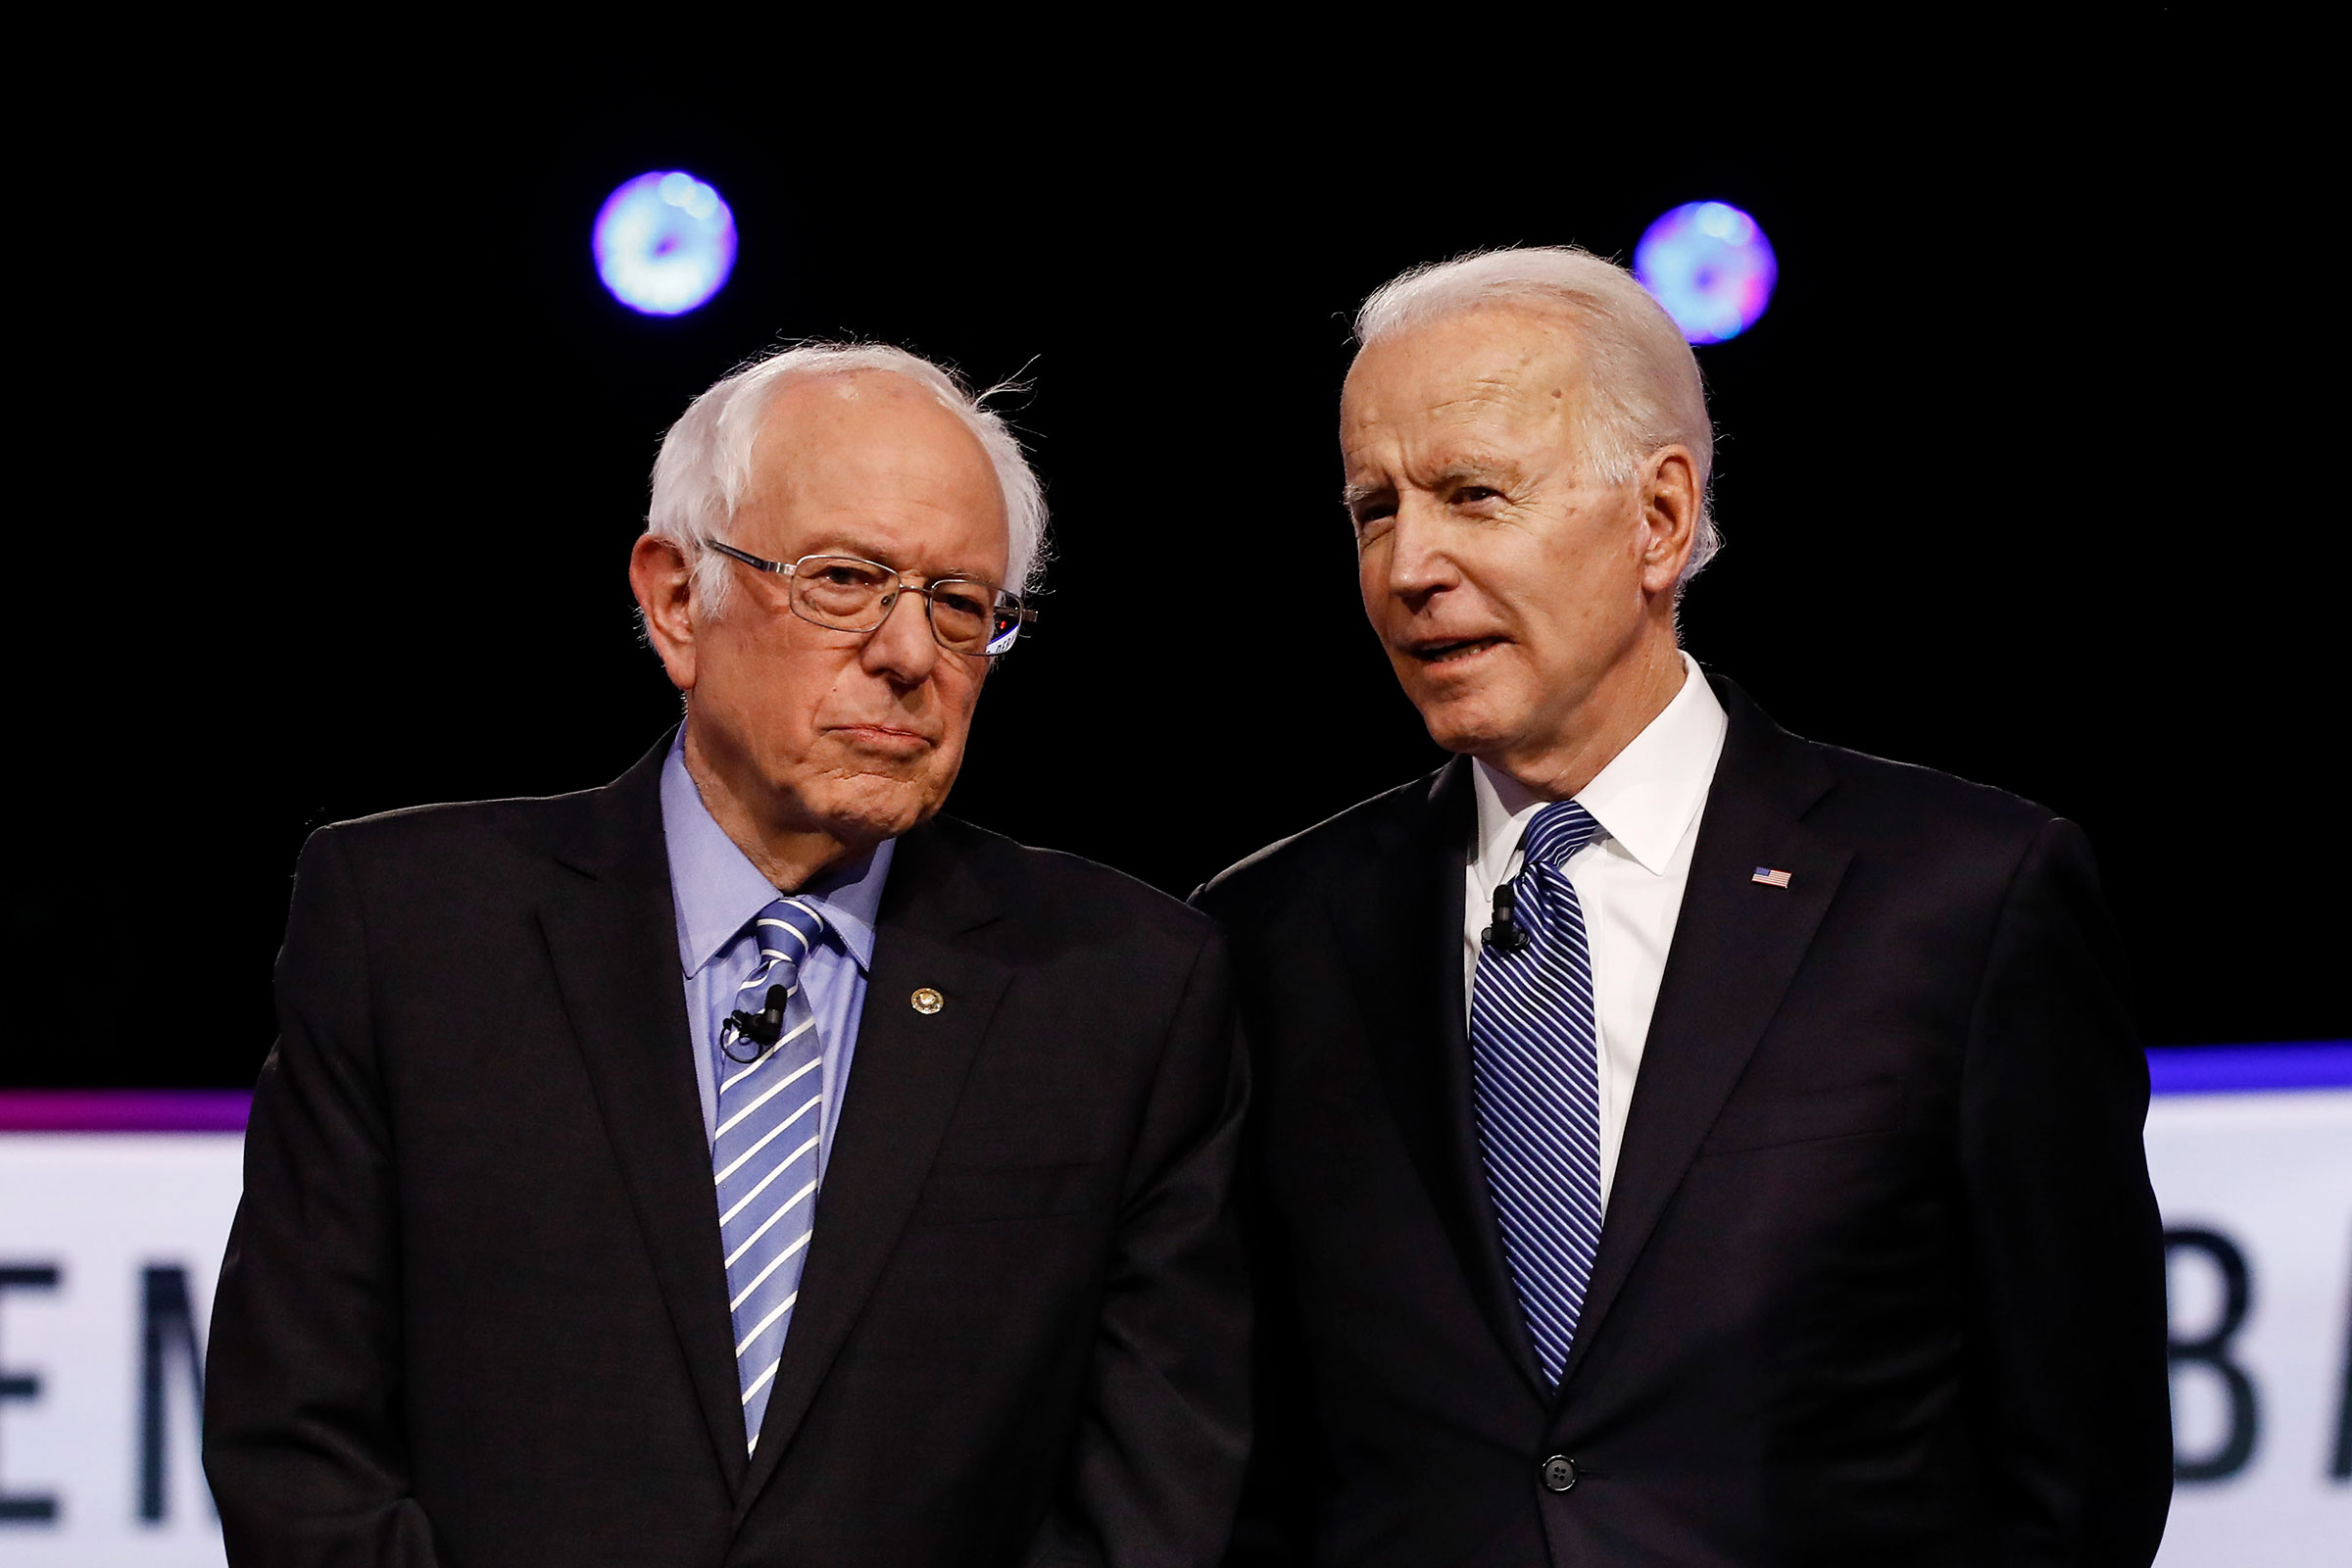 Sen. Bernie Sanders and former Vice President Joe Biden, before a Democratic presidential primary debate in Charleston, S.C. on Feb. 25, 2020.